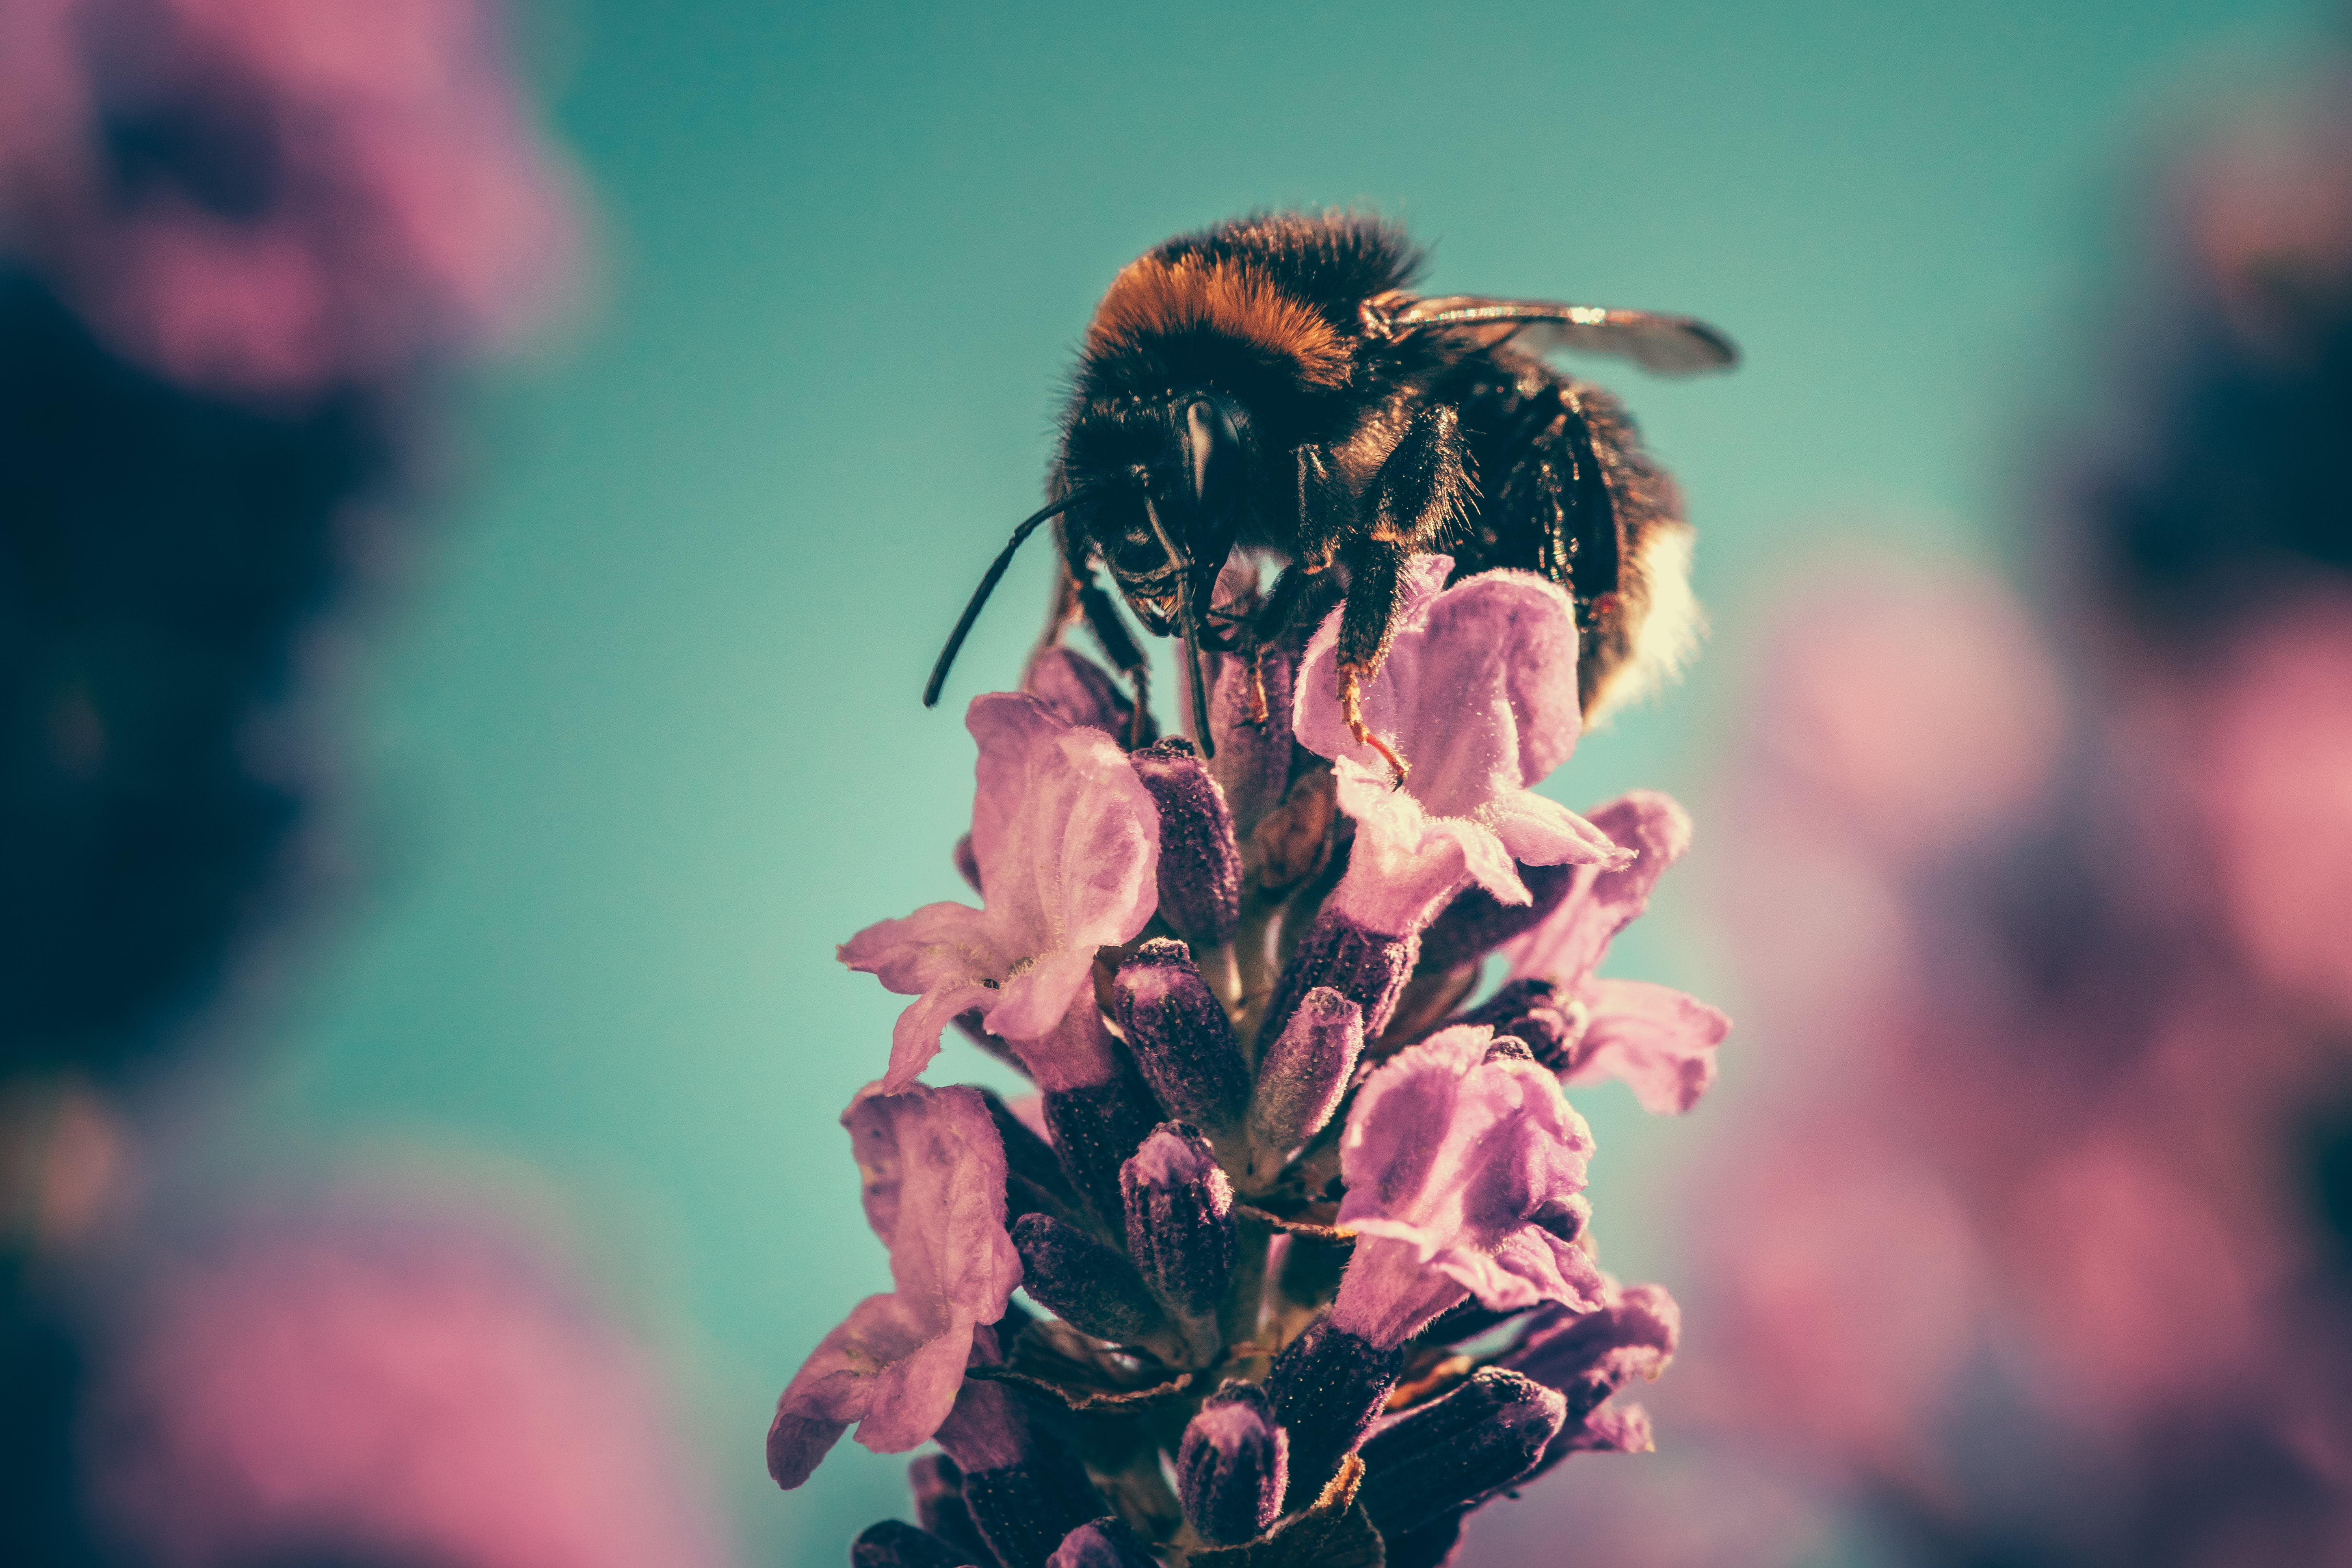 Bee collecting pollen from pink flower bud with blue sky background in Spring